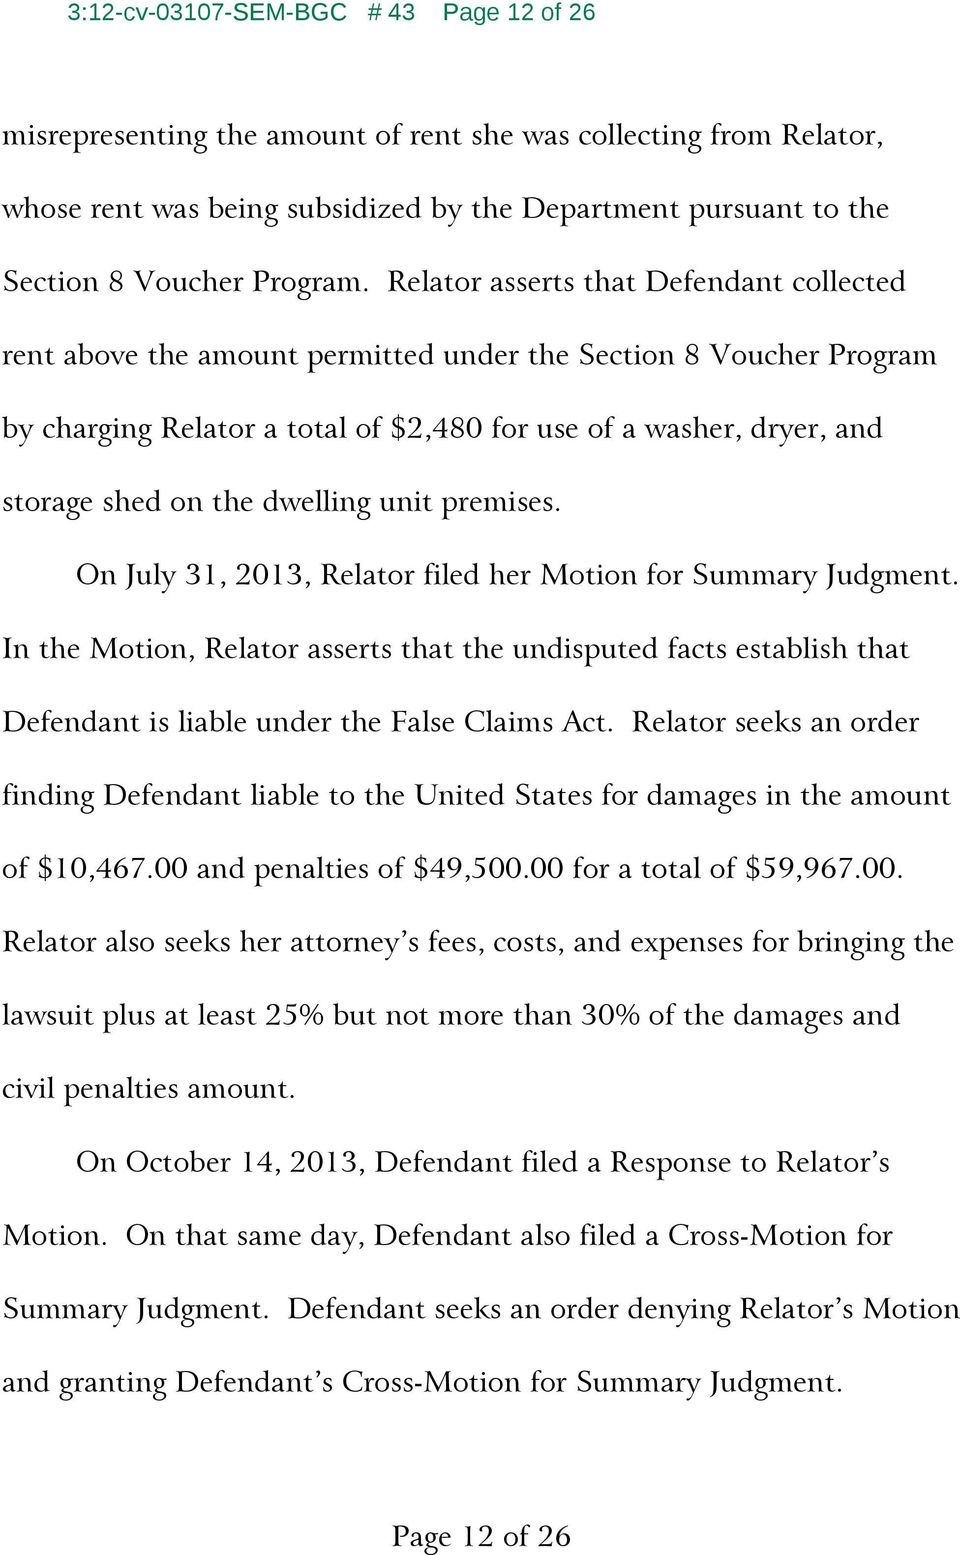 Relator asserts that Defendant collected rent above the amount permitted under the Section 8 Voucher Program by charging Relator a total of $2,480 for use of a washer, dryer, and storage shed on the